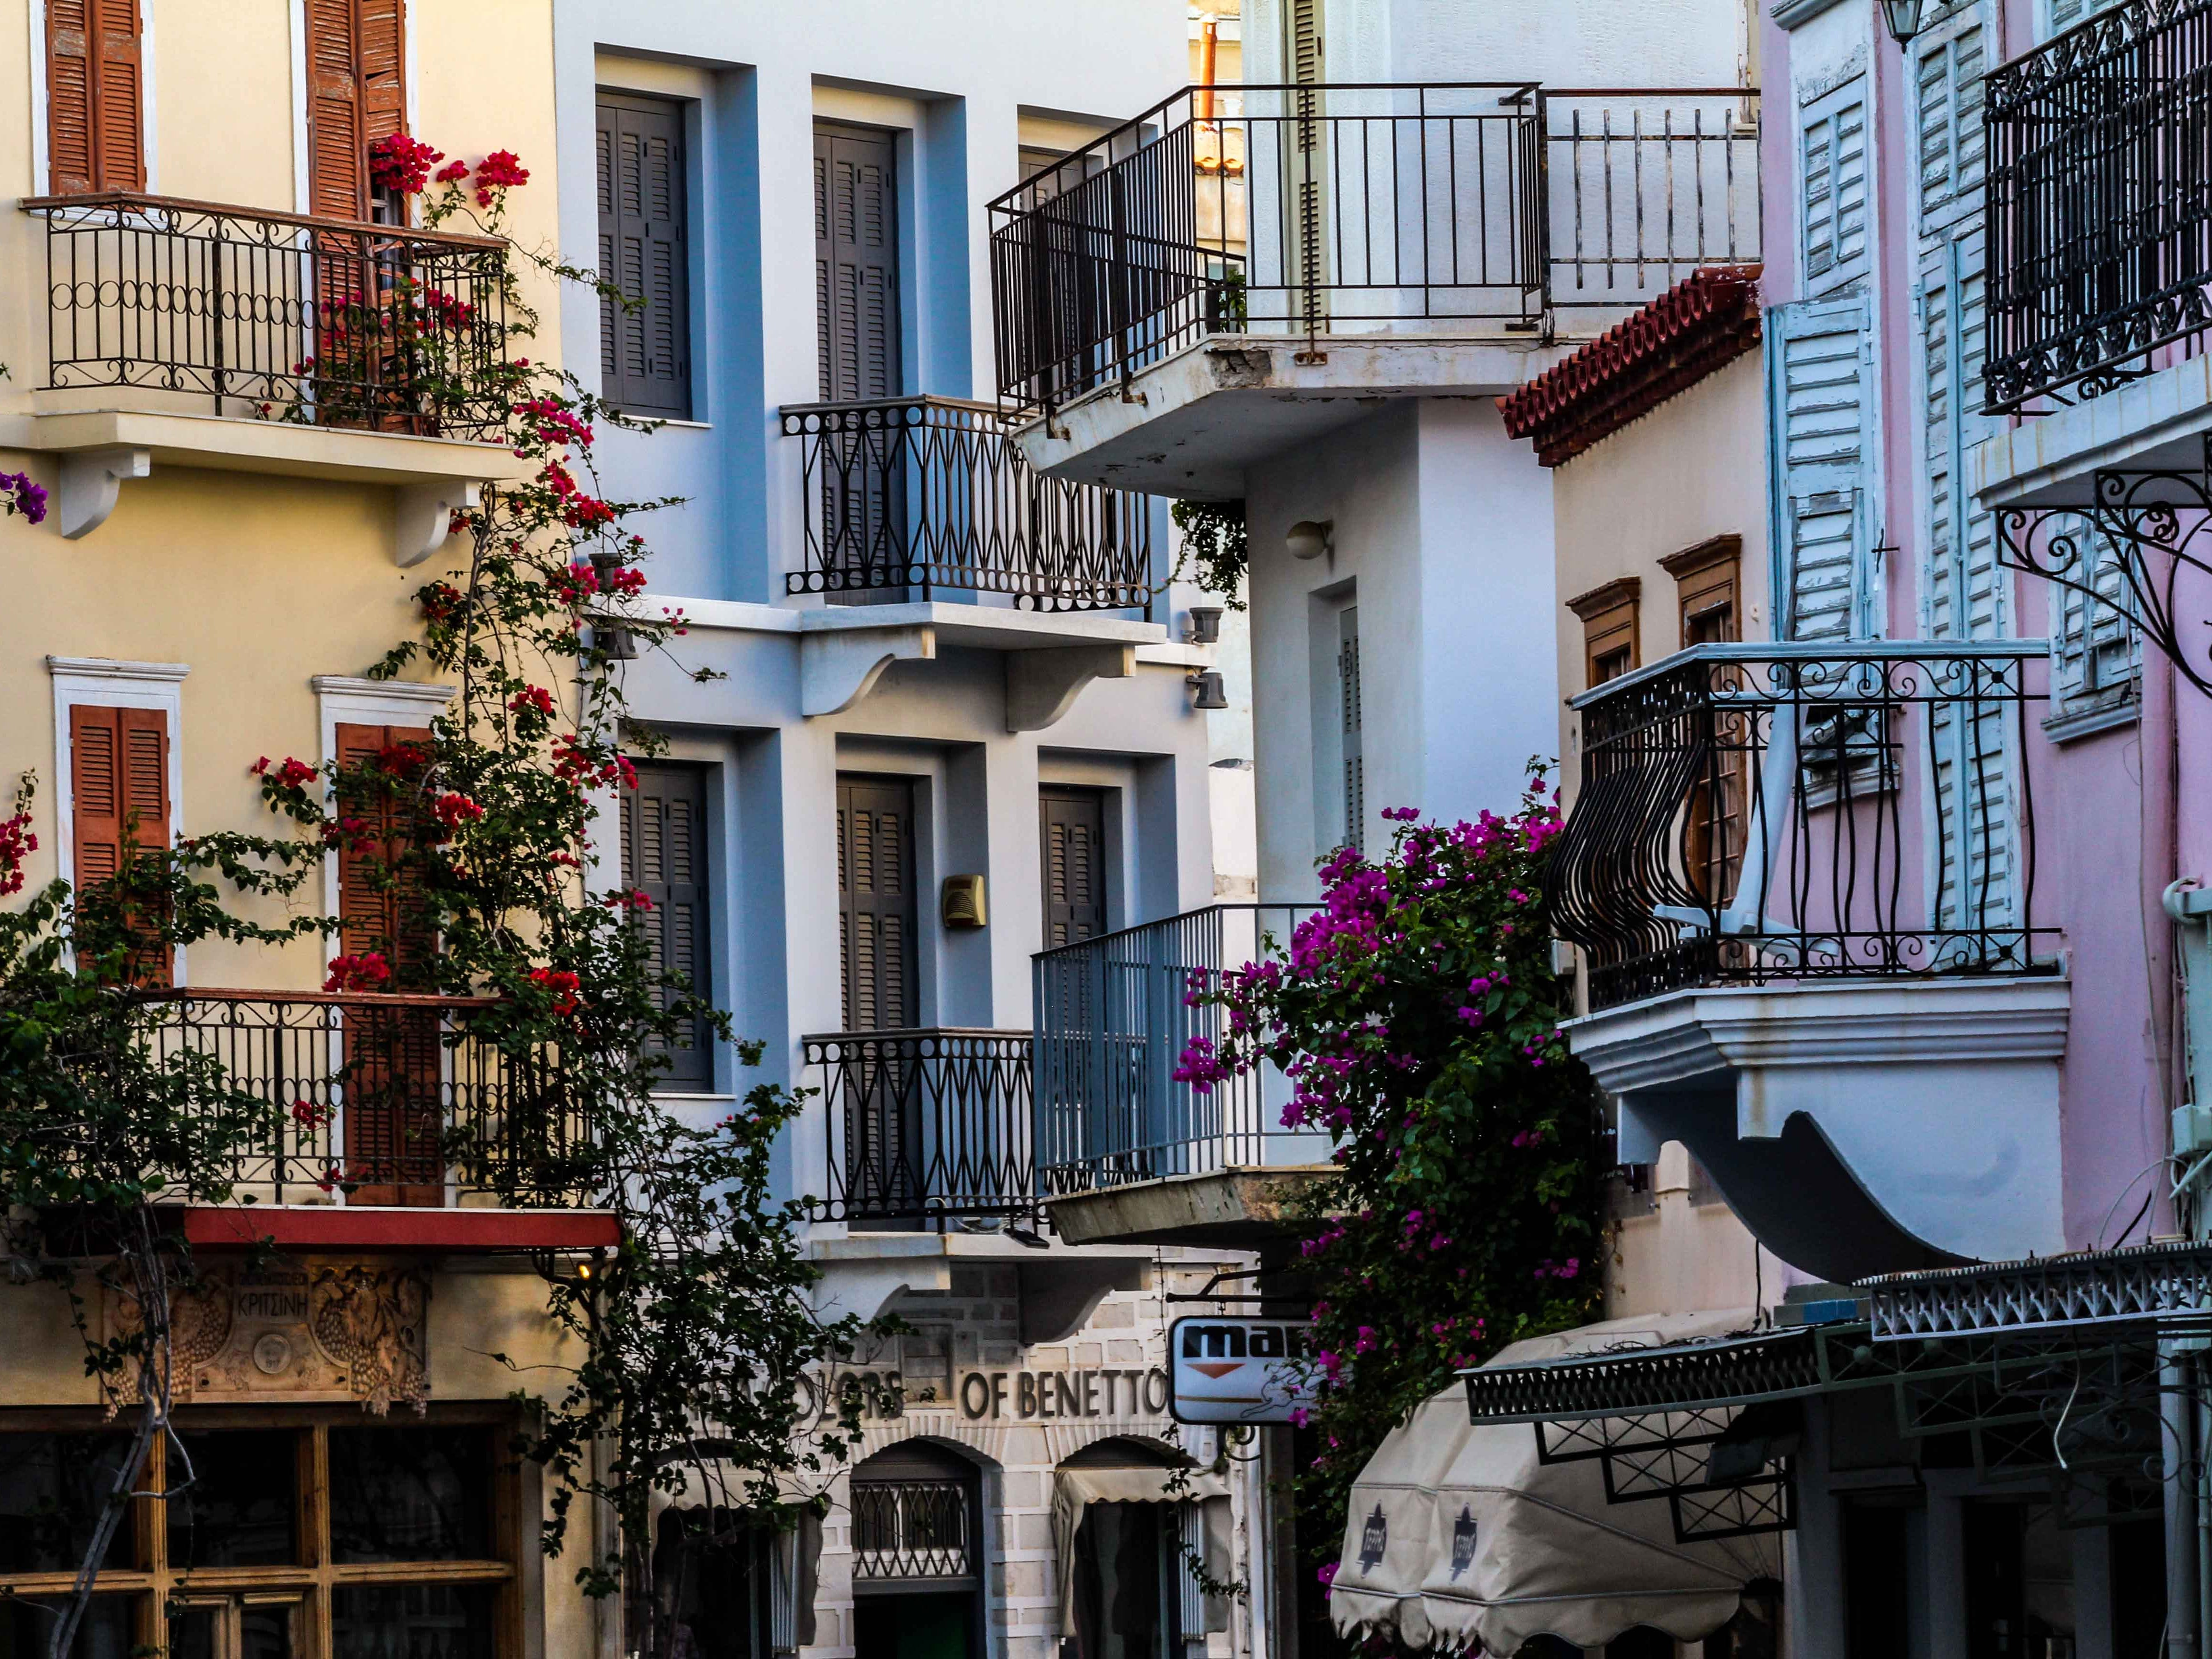 As you stroll the streets of Syros, a level of sophistication remains present from its storied past. The island's wealth is showcased in the opulent Vaporia district and its grand Orthodox church of Agios Nikolaos, or Saint Nicholas.